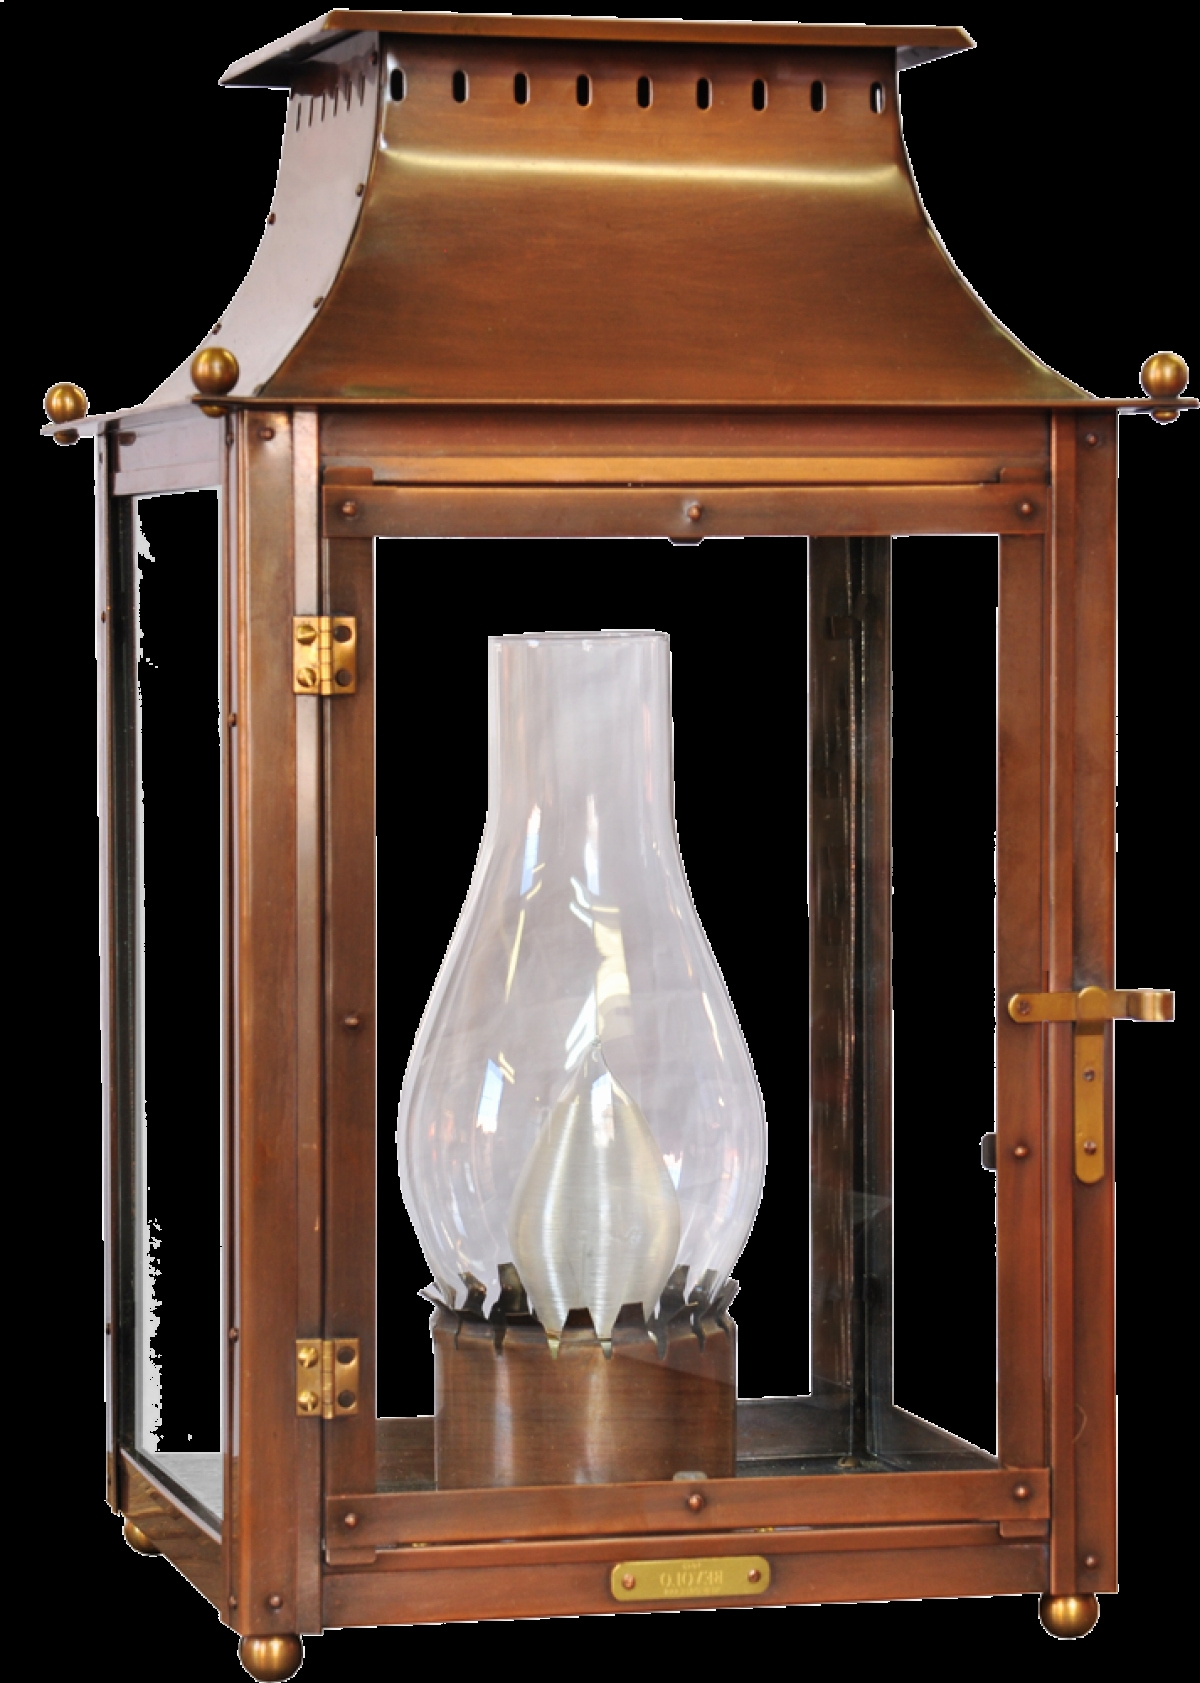 Best And Newest Copper Outdoor Electric Lanterns Pertaining To Outdoor Electric Lantern Lights – Outdoor Lighting Ideas (View 2 of 20)